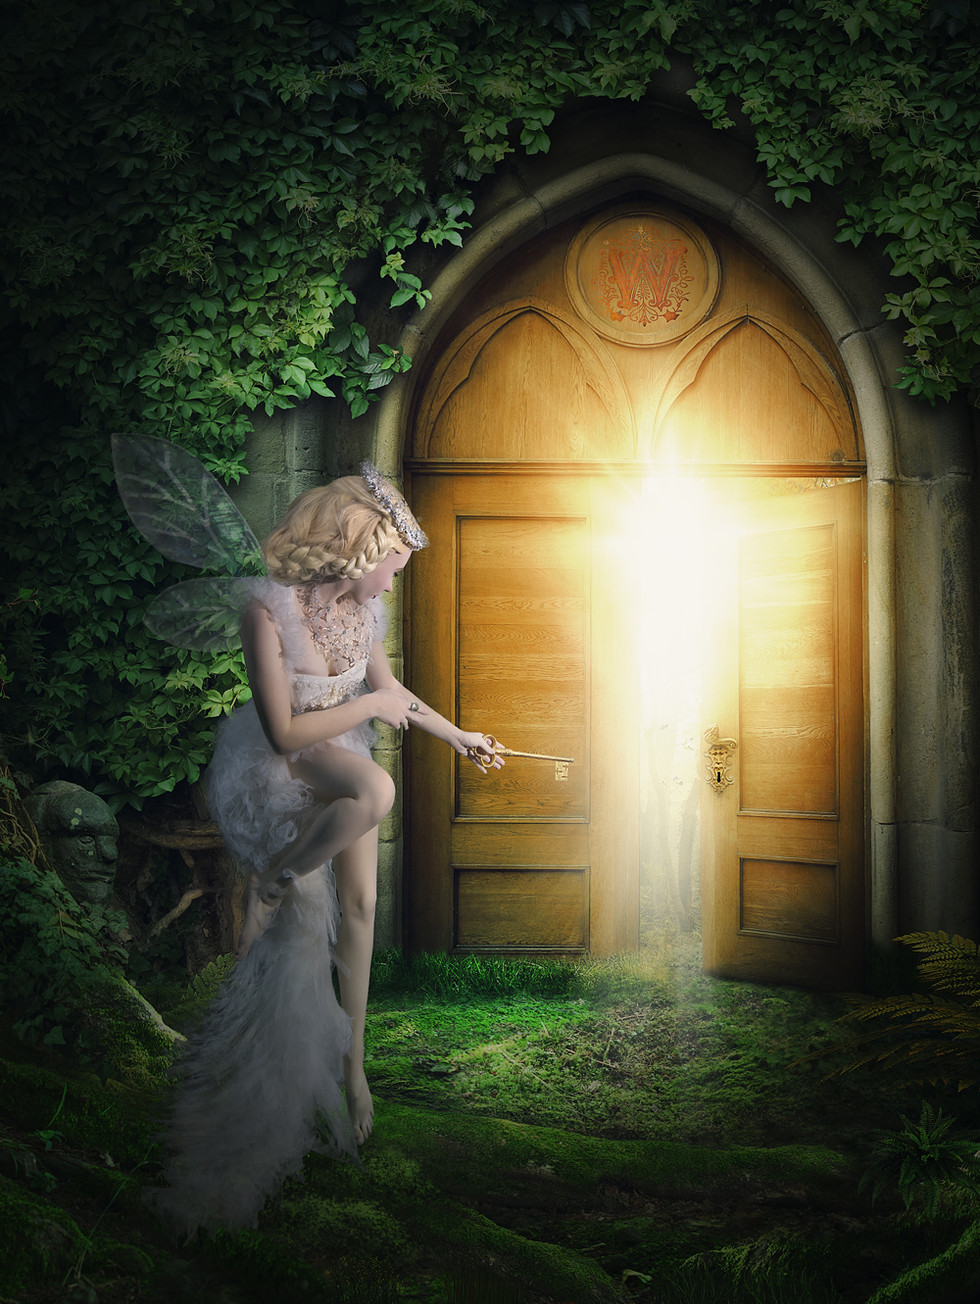 Queen Mab and the key to the Waterland